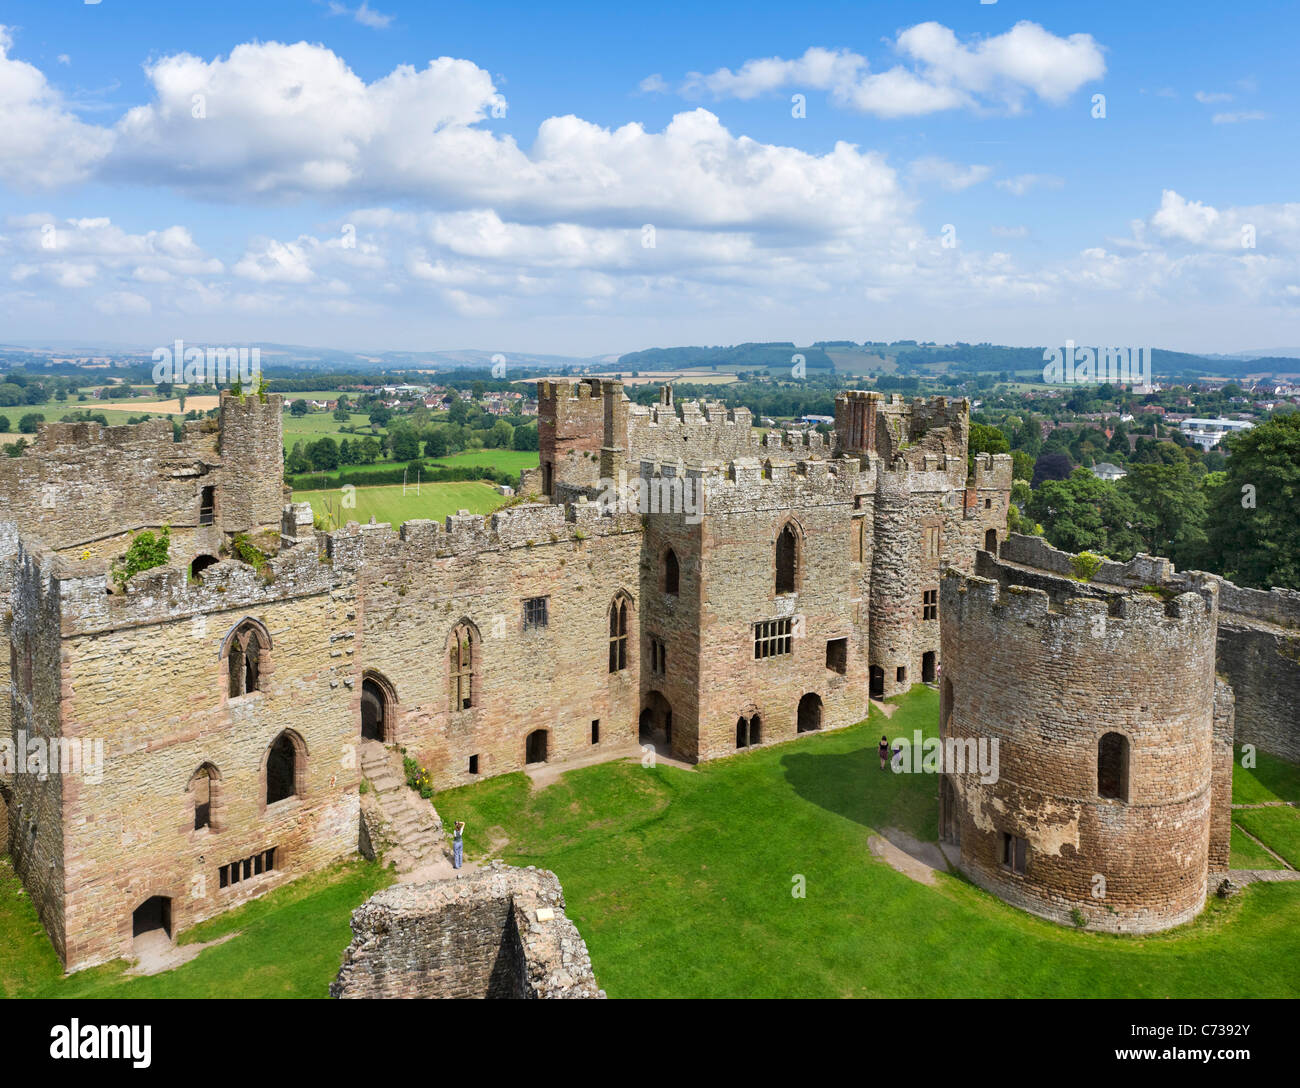 Ruins of Ludlow Castle and a view out over the Shropshire countryside, Ludlow, Shropshire, England, UK - Stock Image